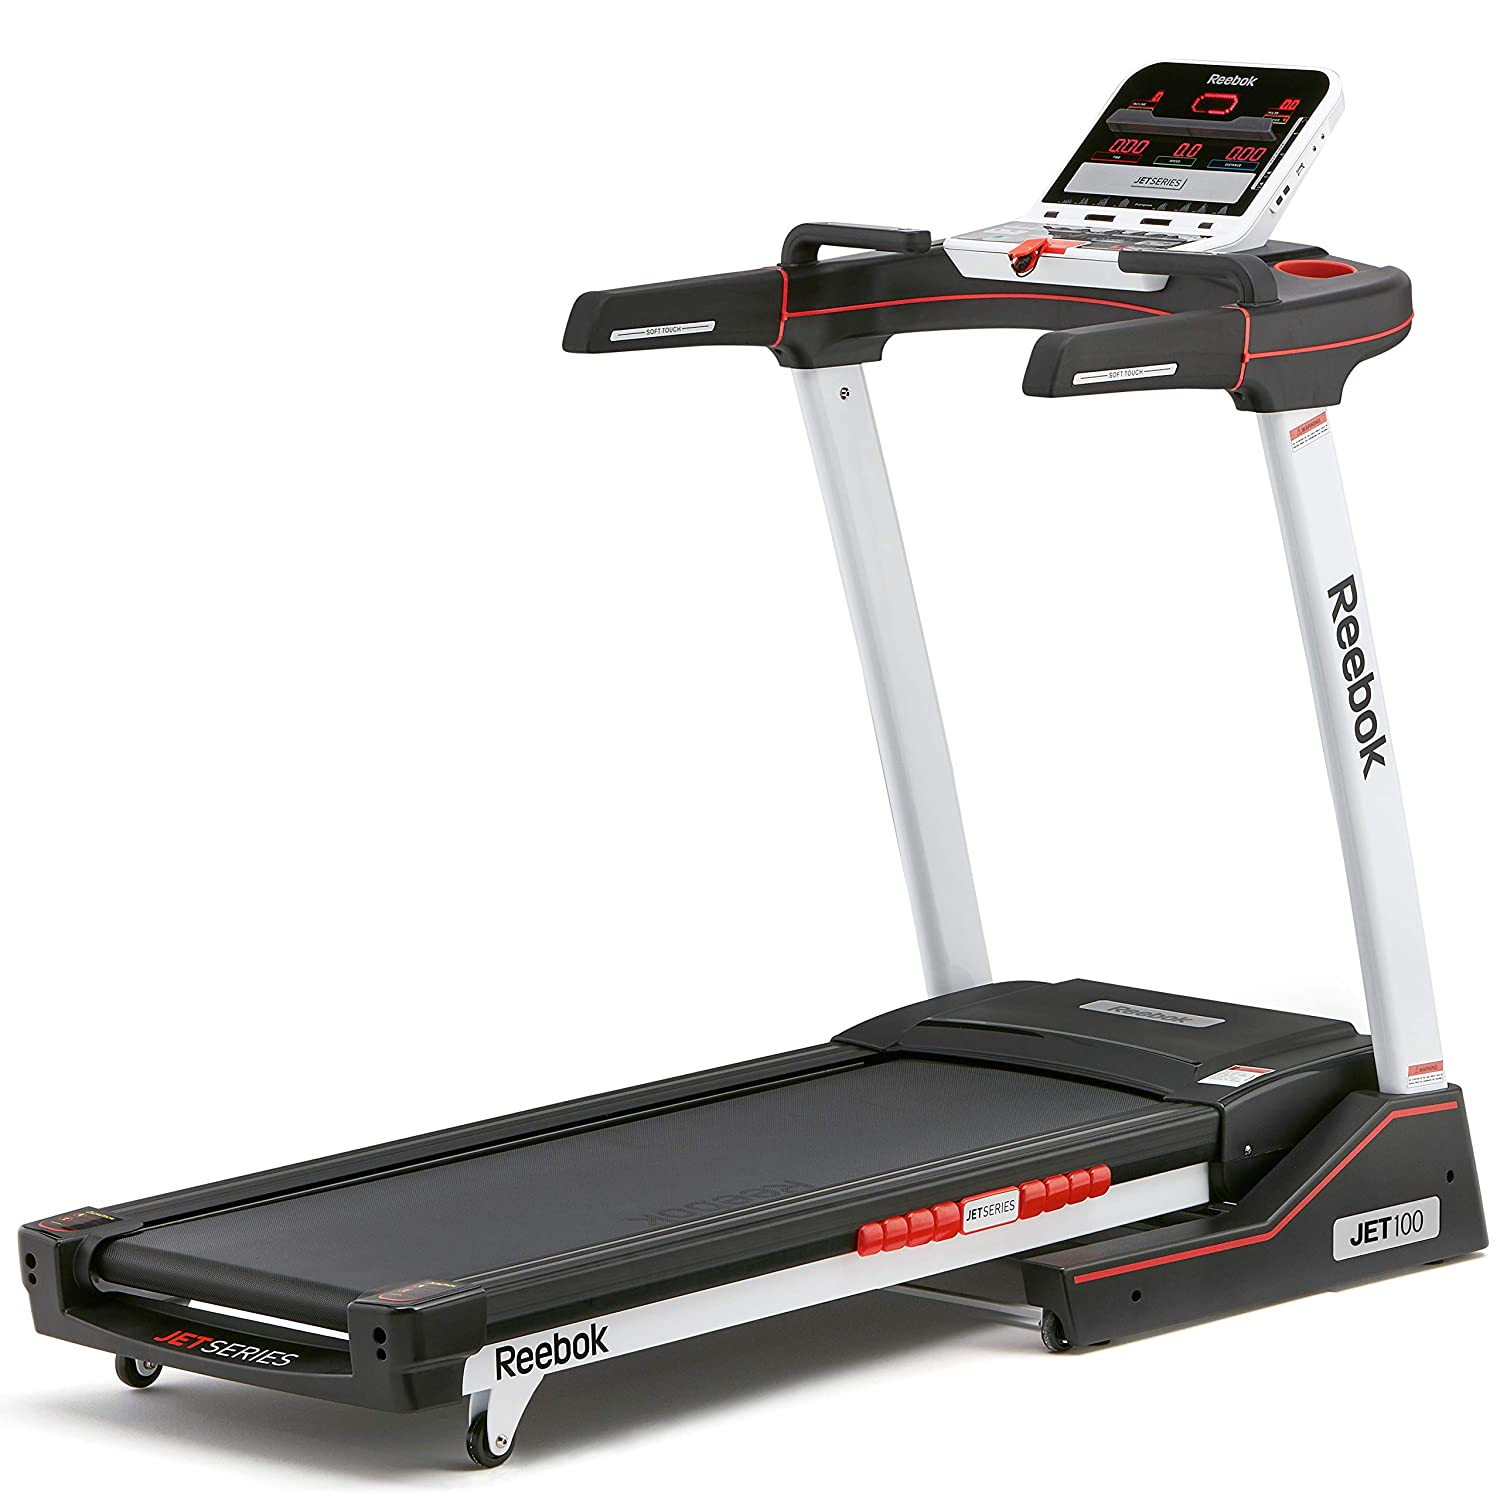 Reebok Jet 100  - Best Treadmill For Home Use Under $1000